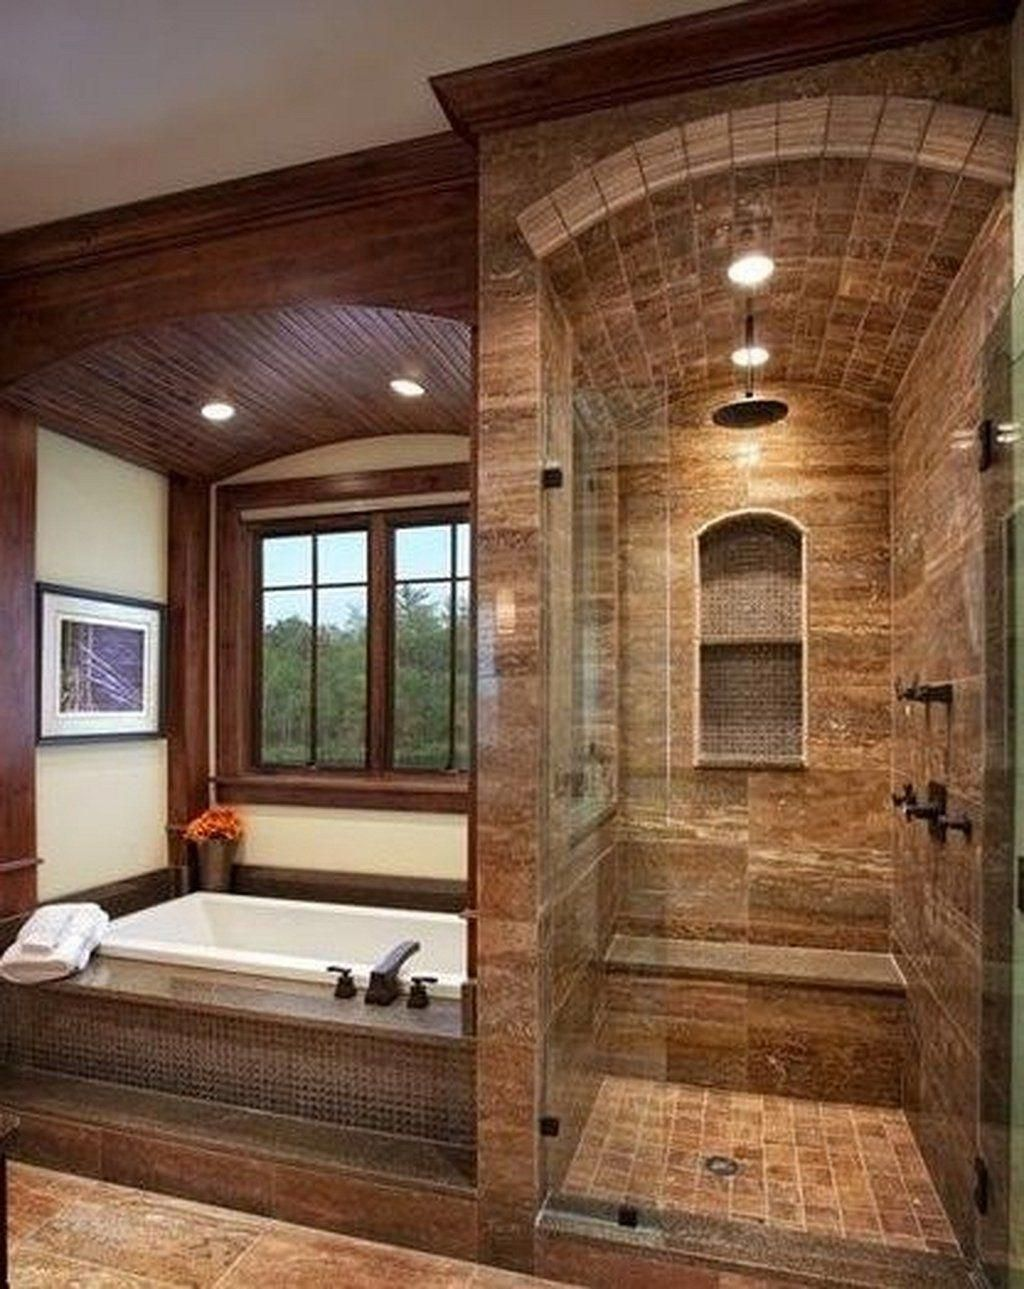 How to decorate your living room? | Dream bathrooms ...